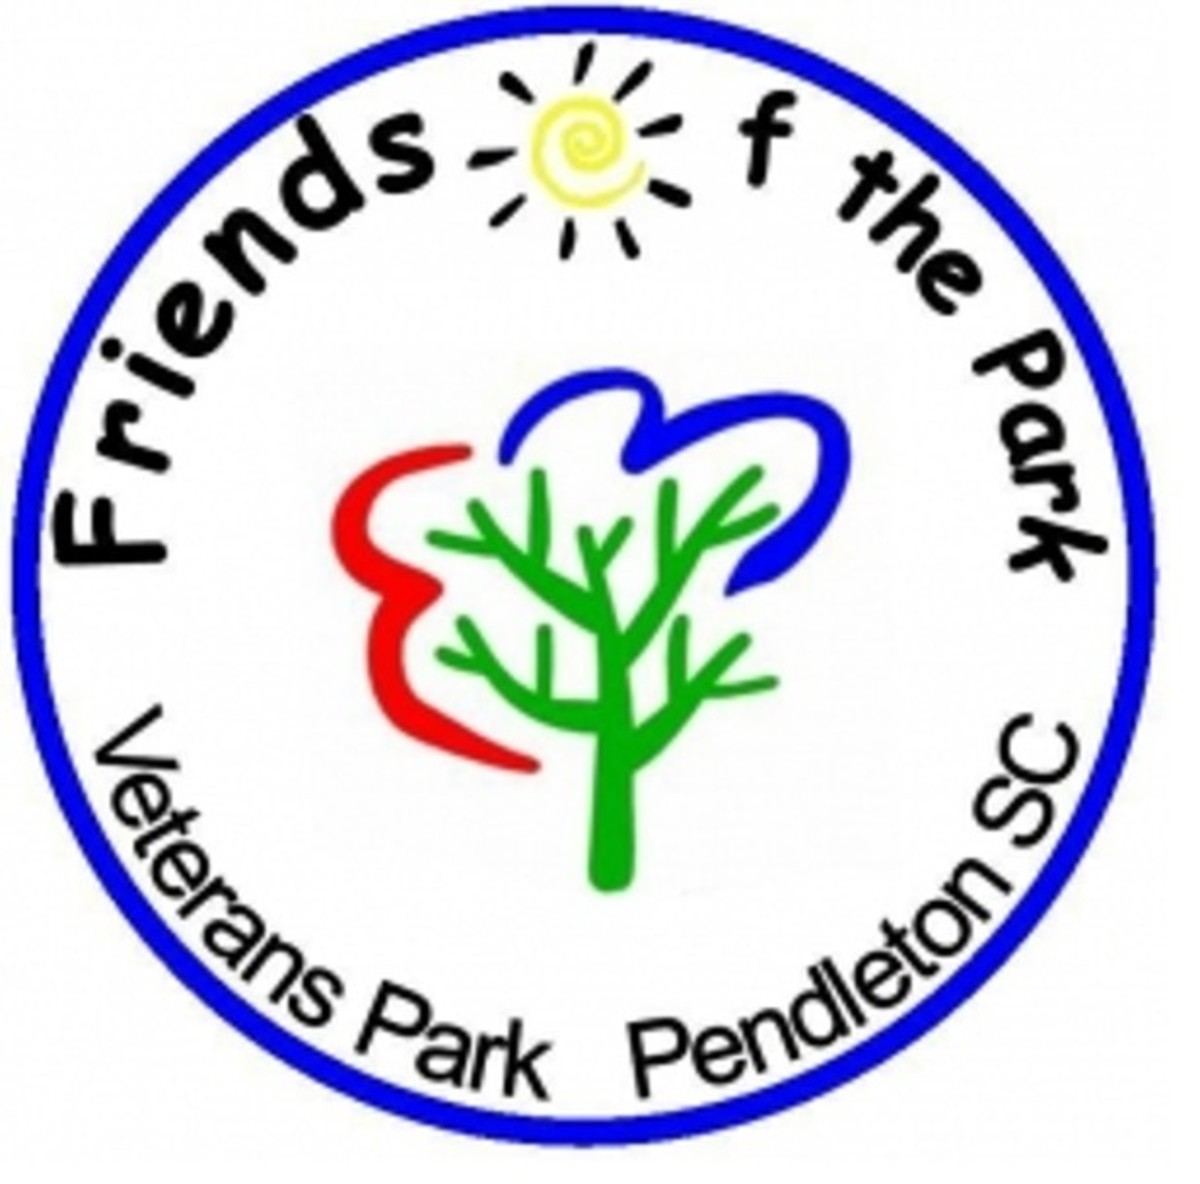 Friends of the Park Veterans Park Pendleton SC